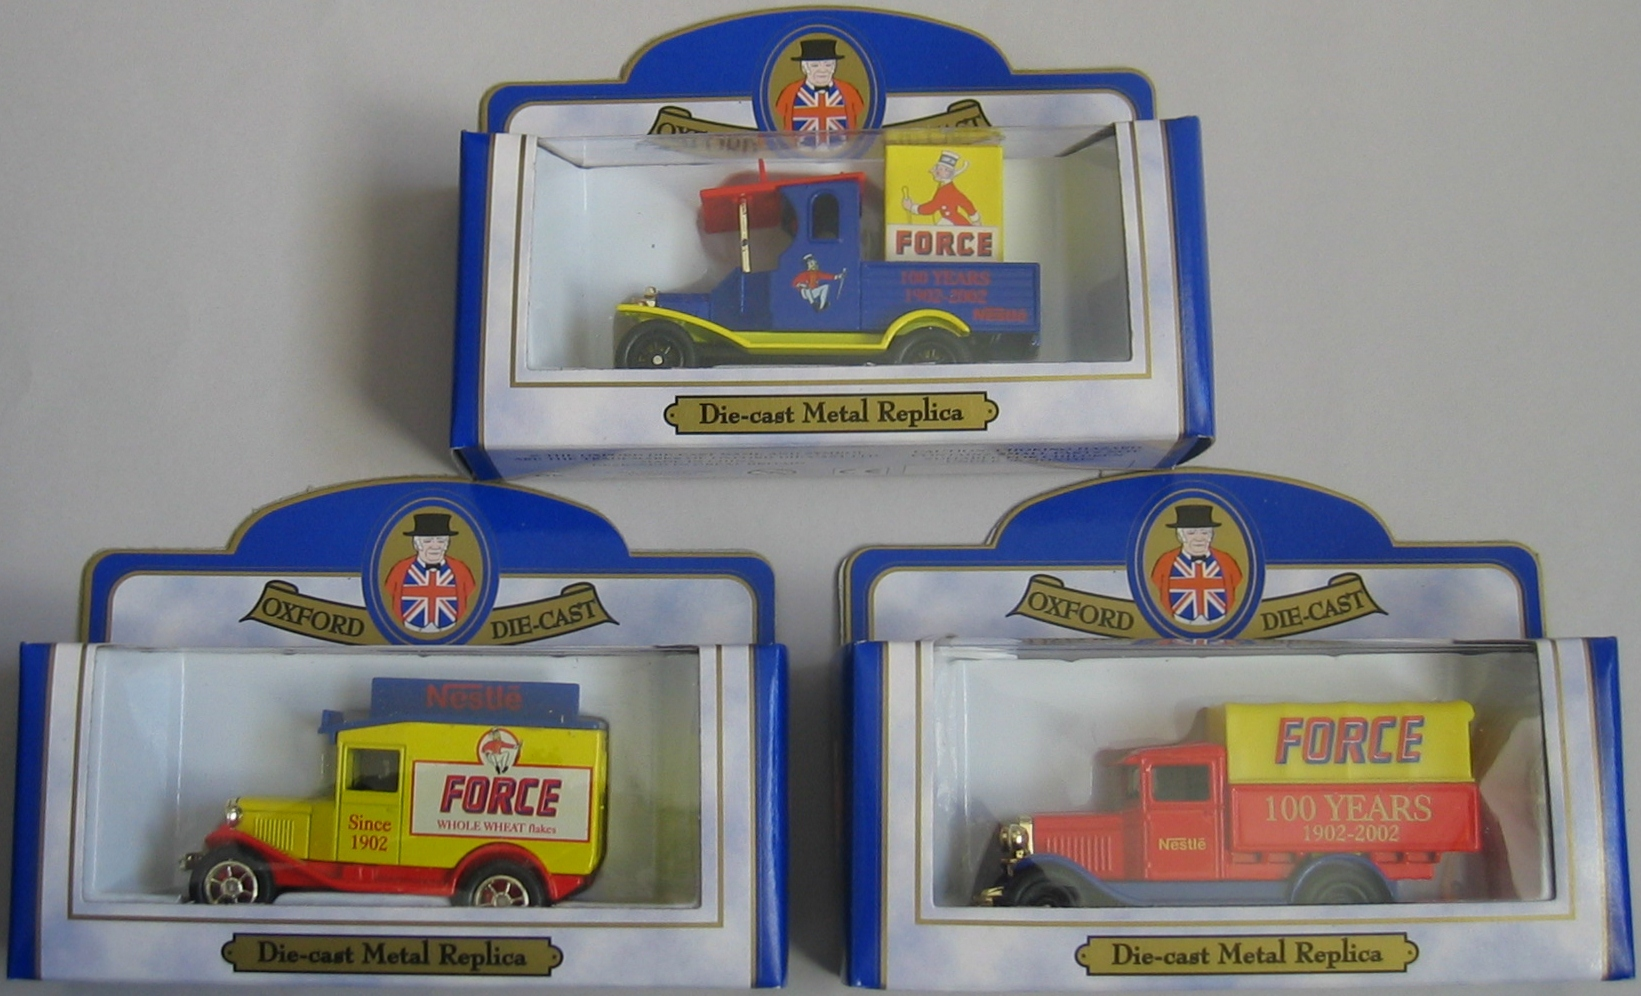 2002 Force Van set